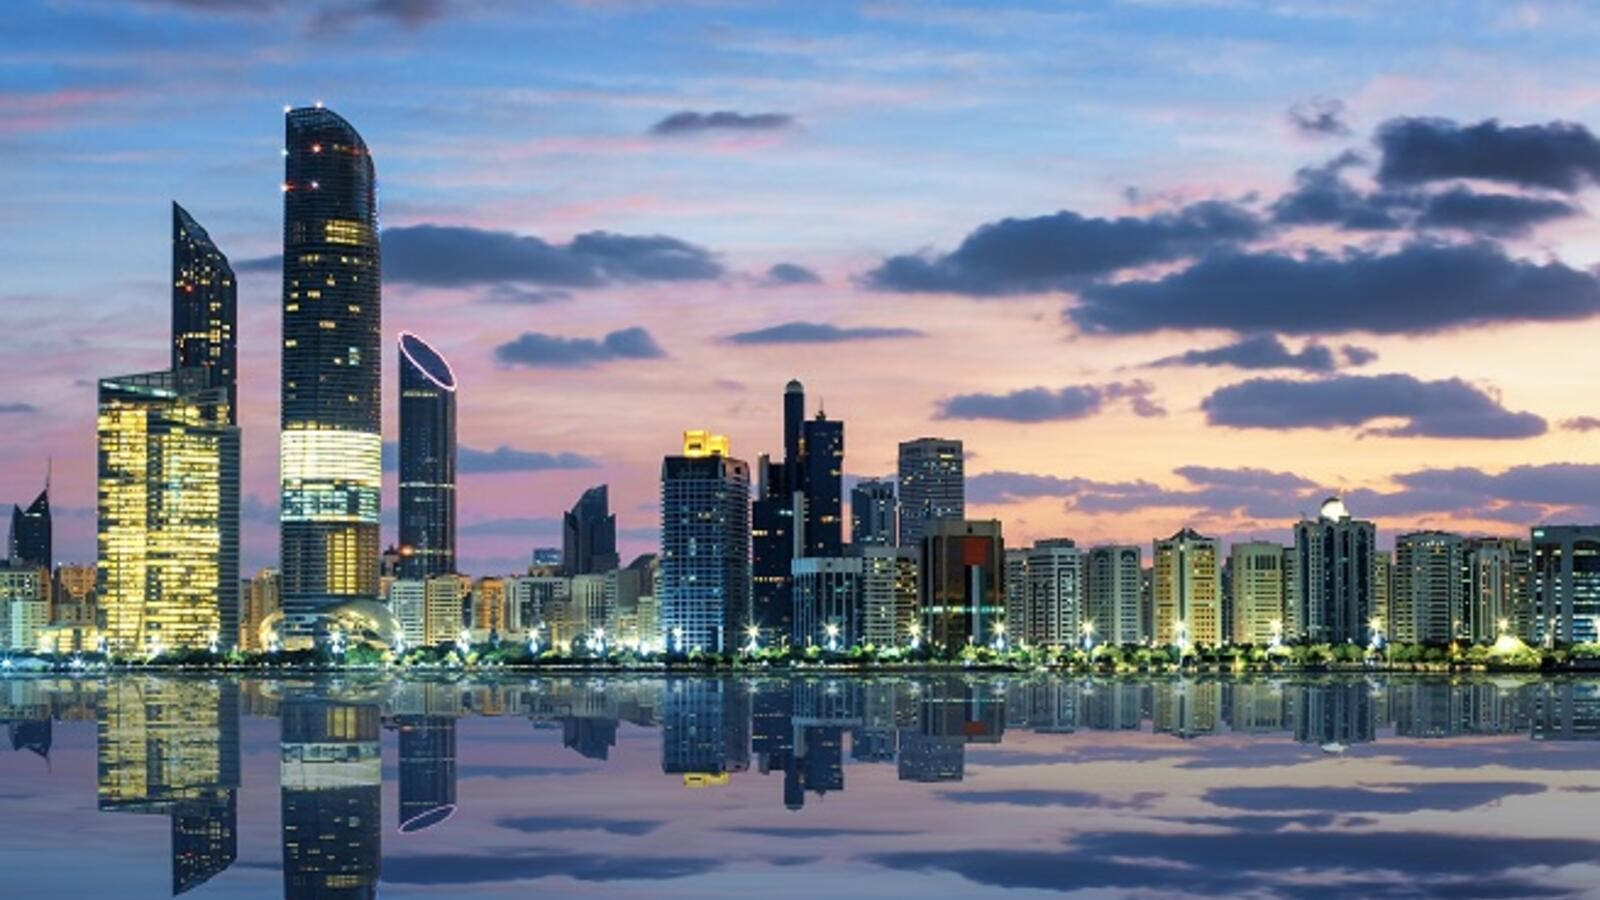 Abu Dhabi Takes Top Place in Global Real Estate Investment League